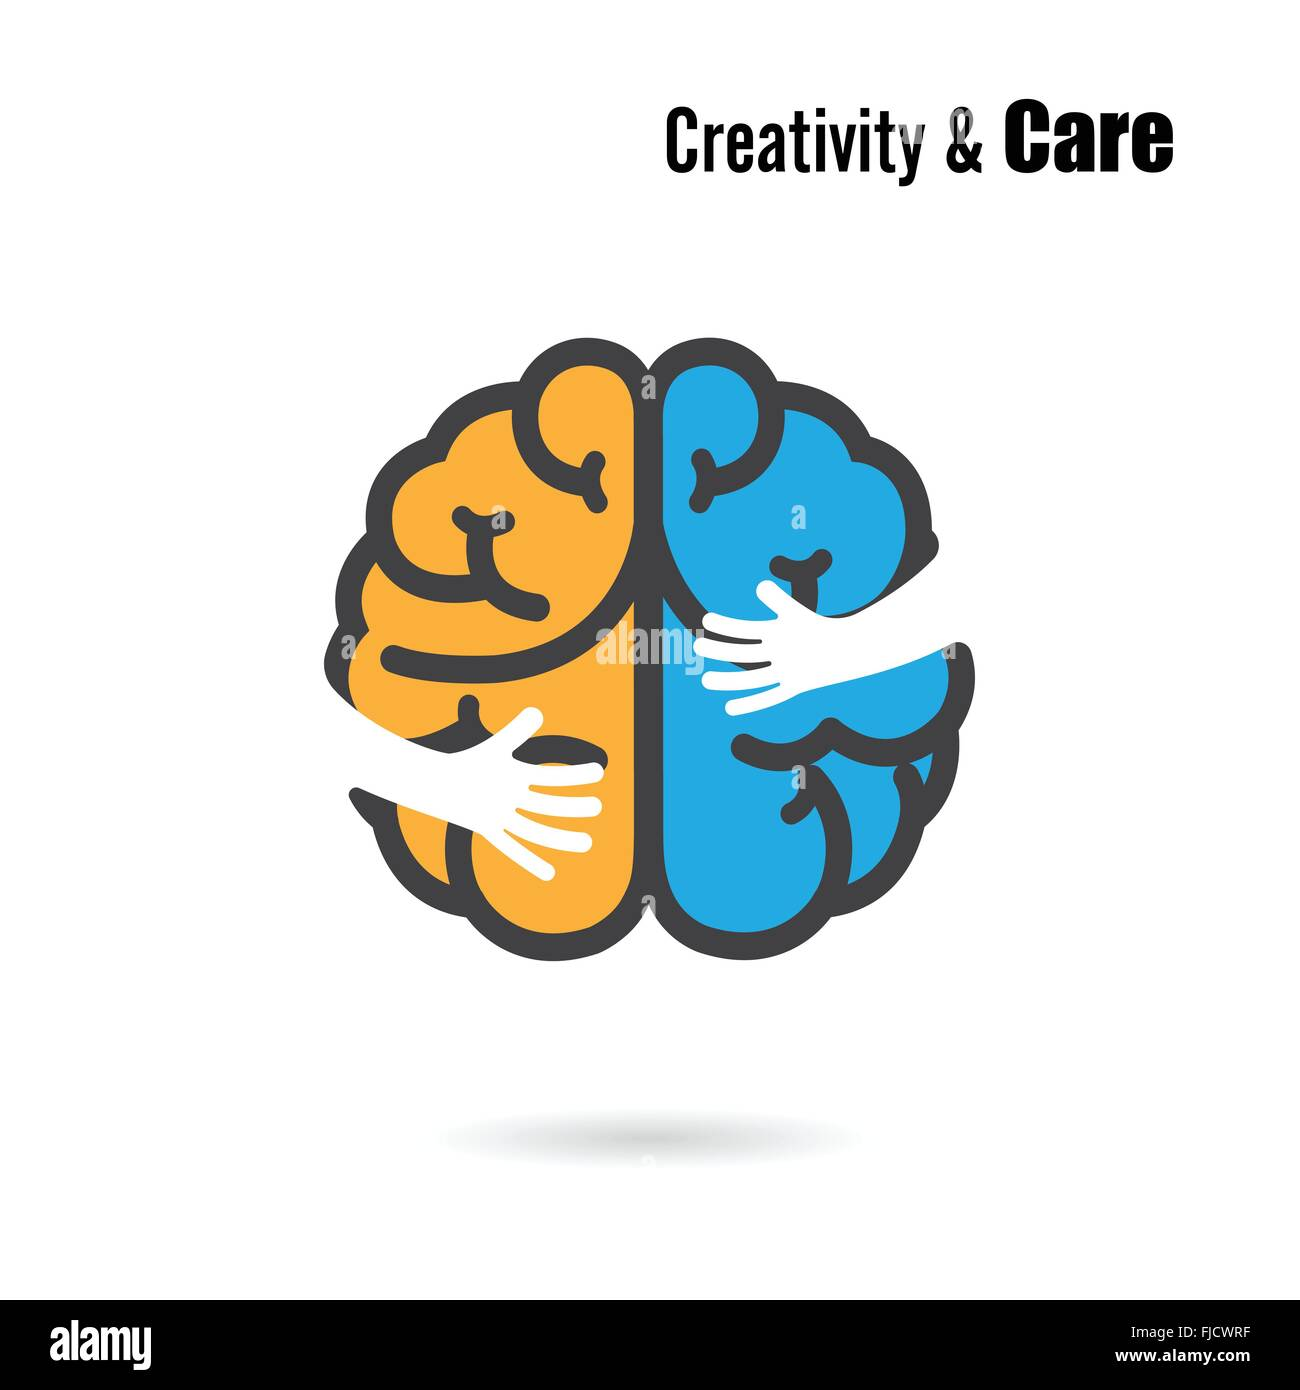 Creative Brain Logo Design Vector Template With Small HandEducation And Business Logotype ConceptVector Illustration